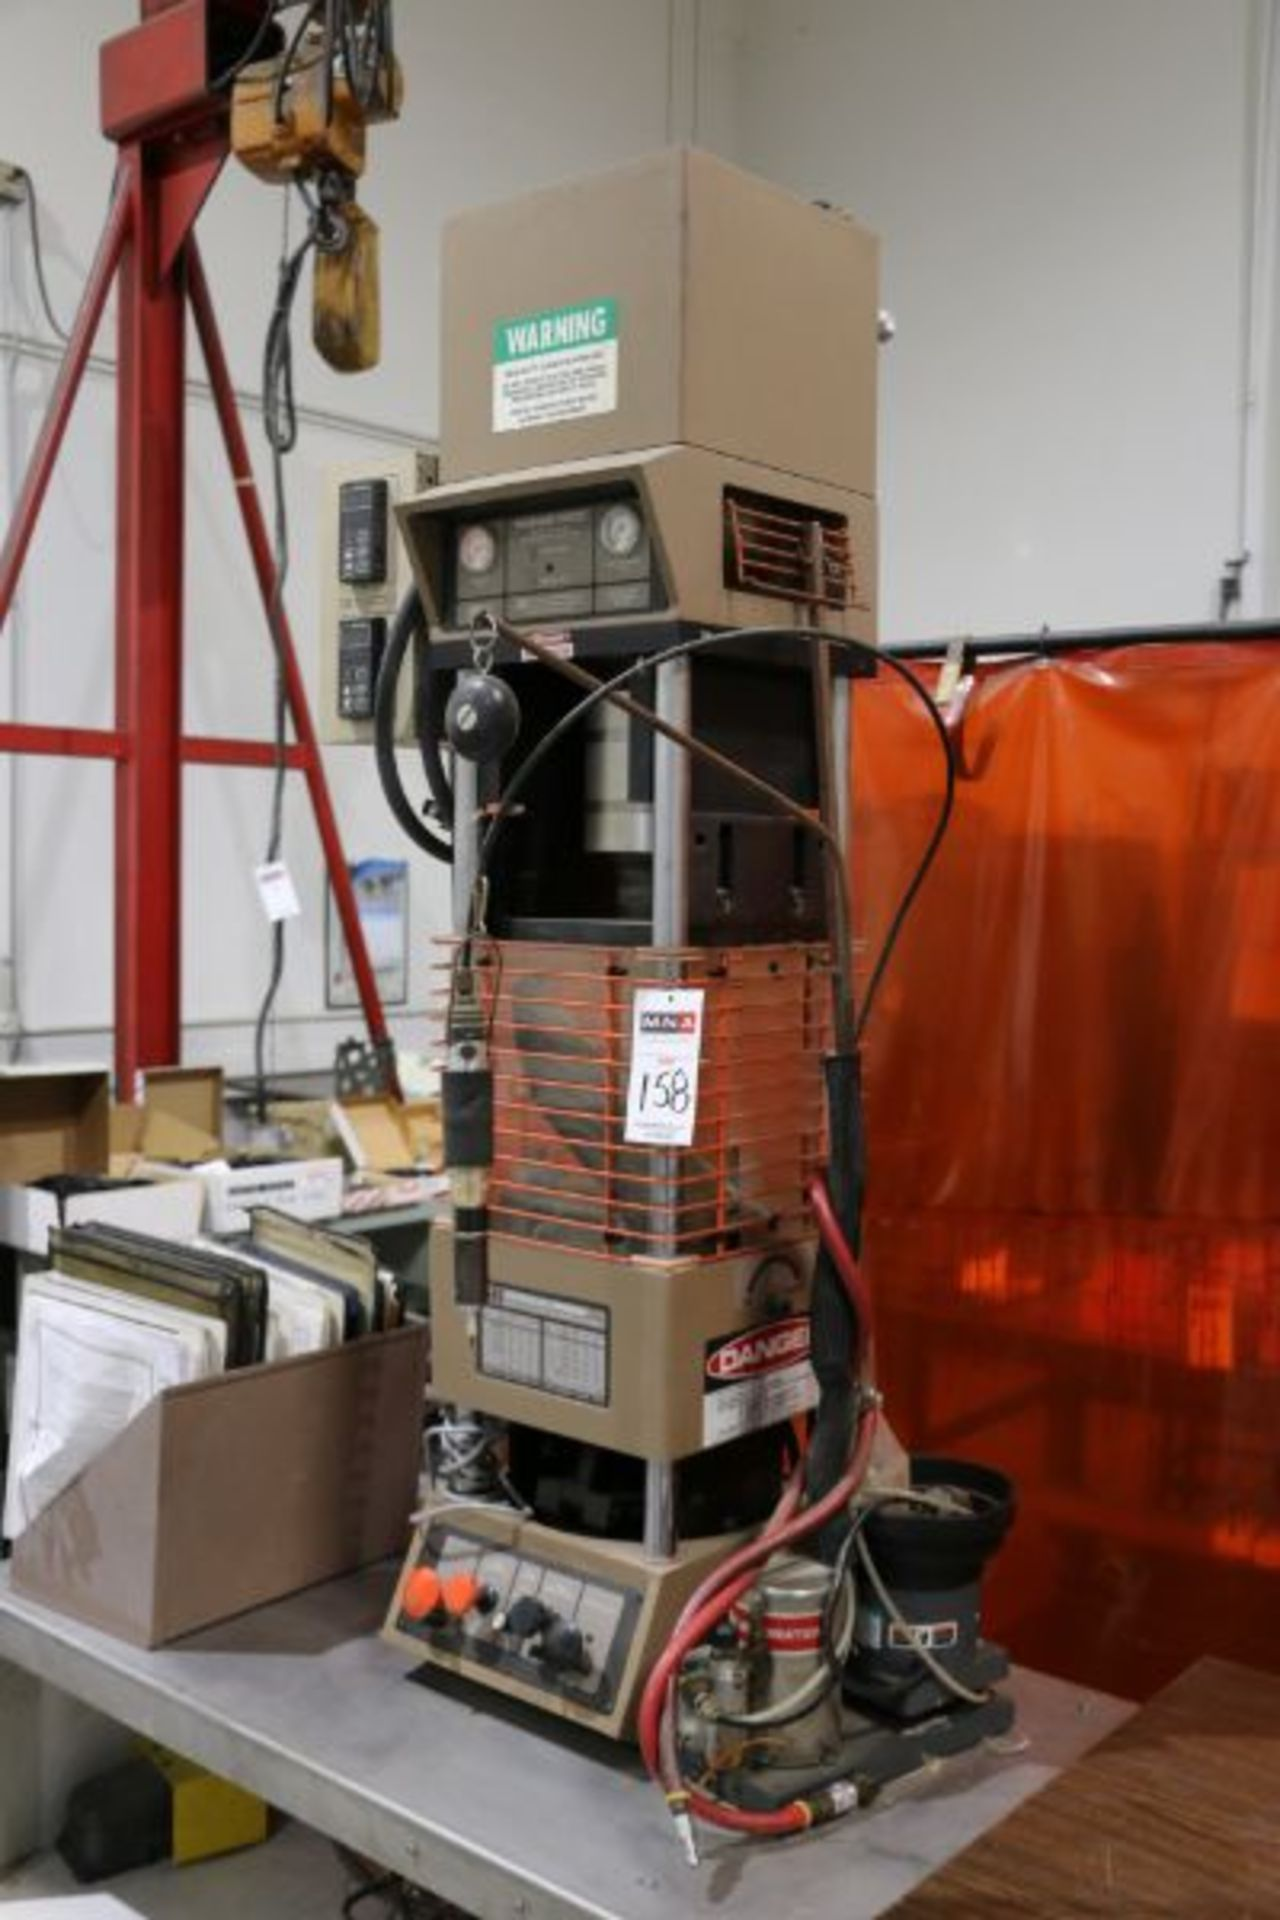 Morgan Press G-100T Vertical Plastic Injection Molding Press, New 2001 - Image 2 of 4